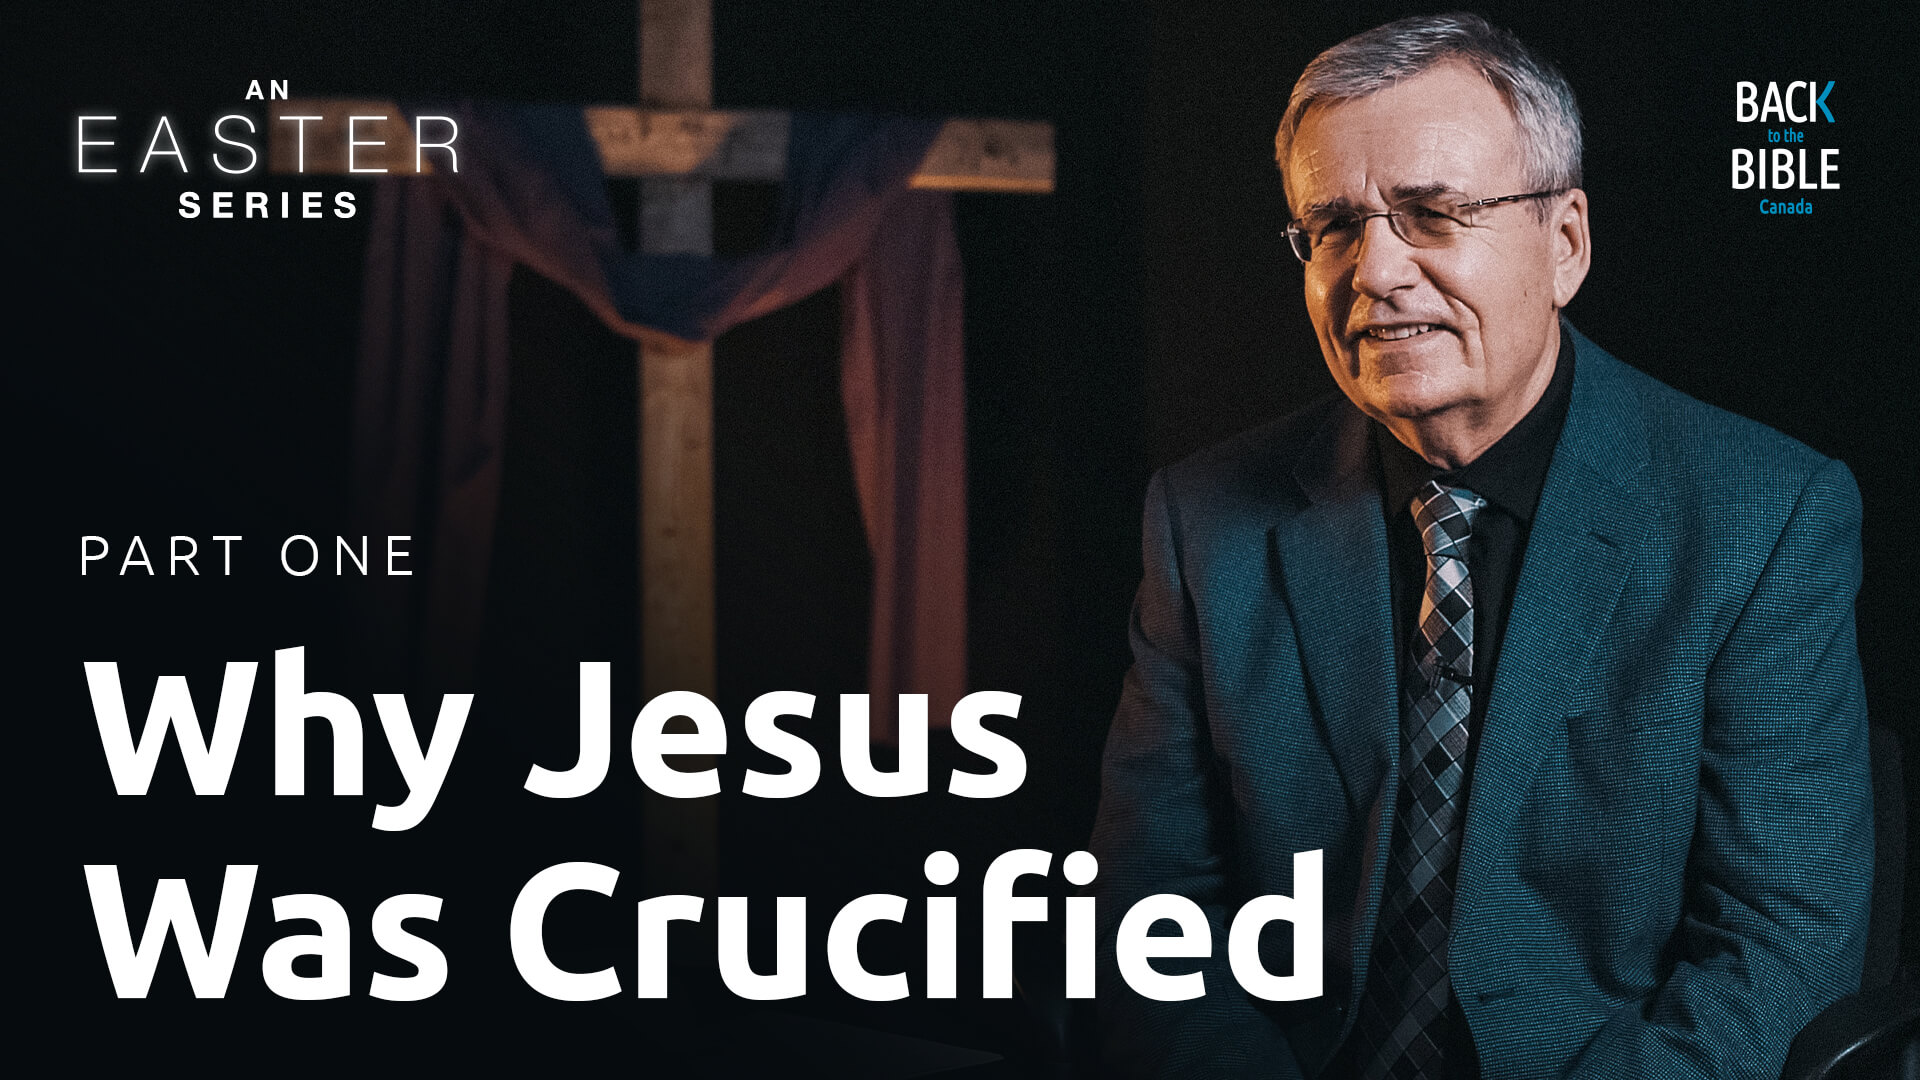 Why Jesus Was Crucified - An Easter Series - Back to the Bible Canada